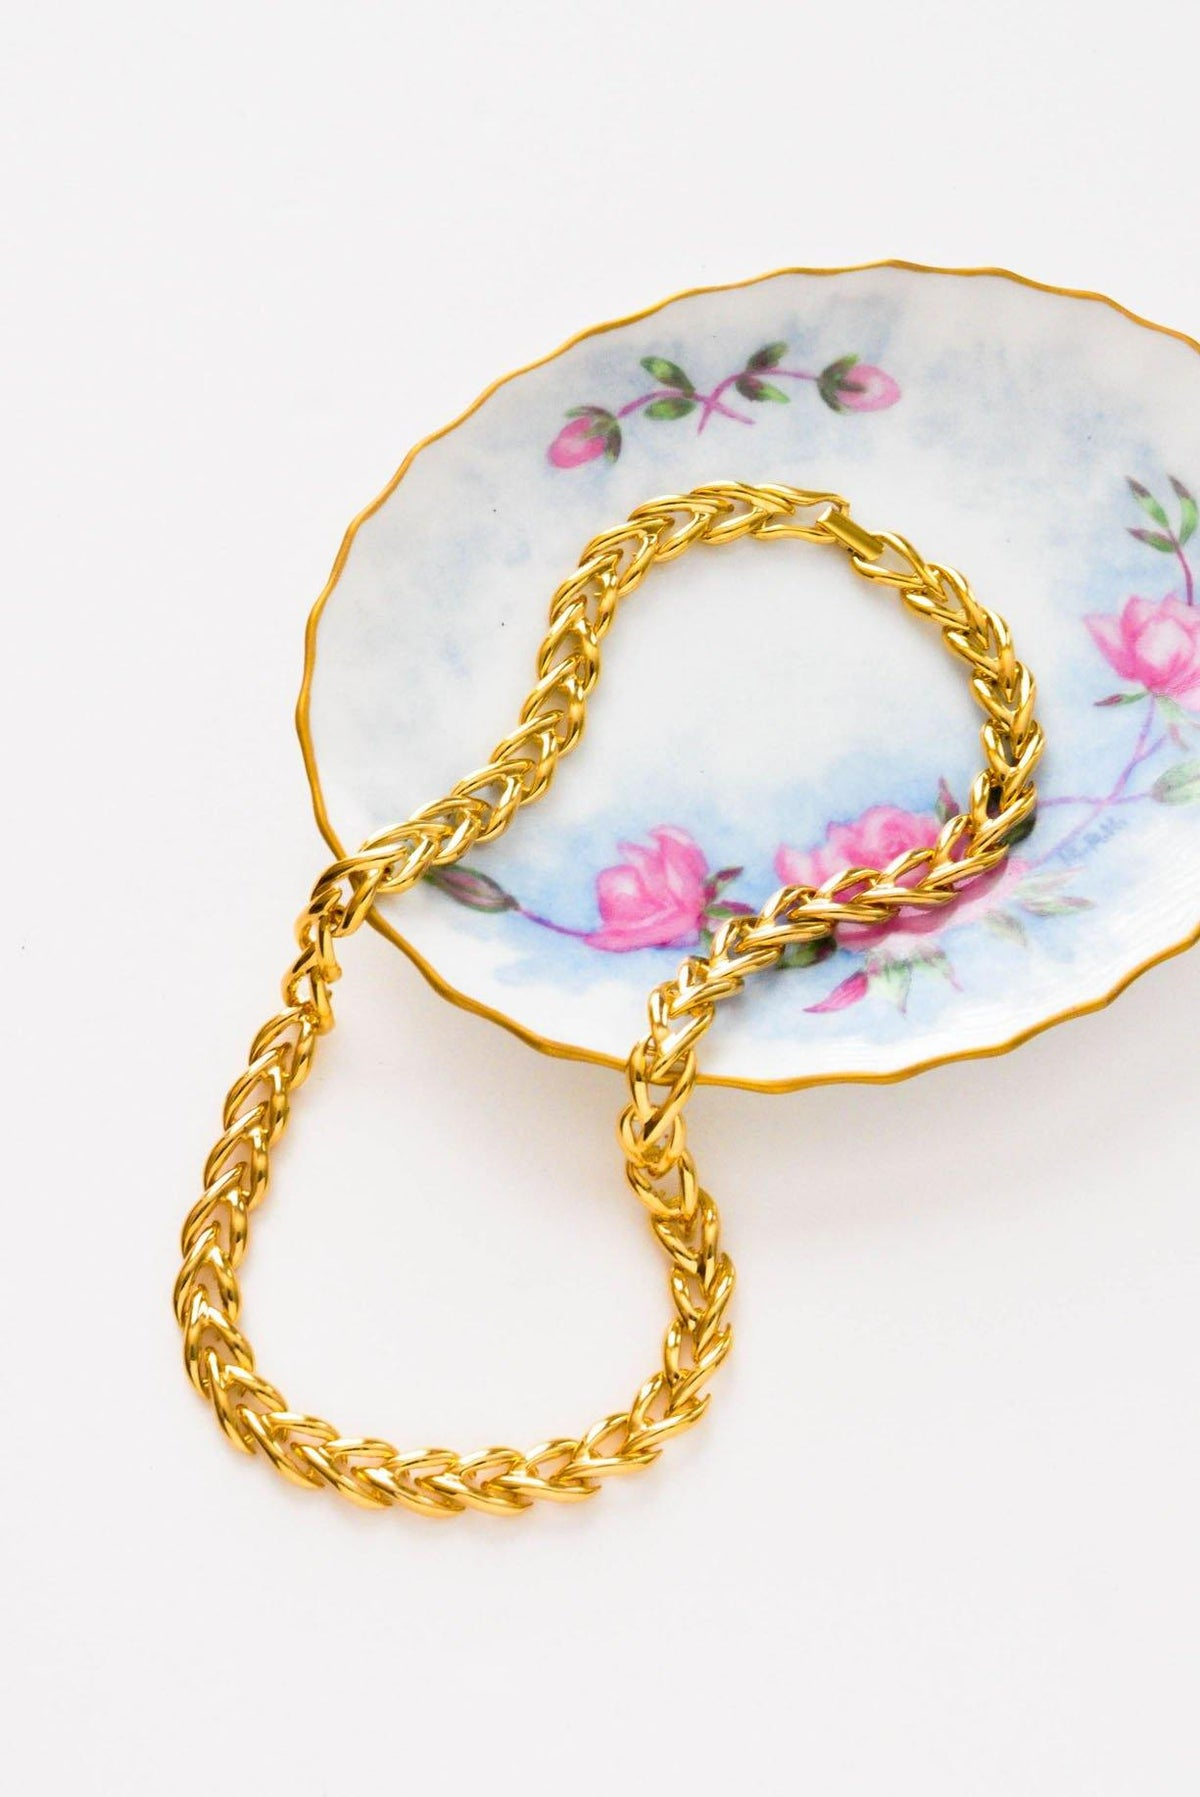 Braided Gold Necklace - Sweet & Spark